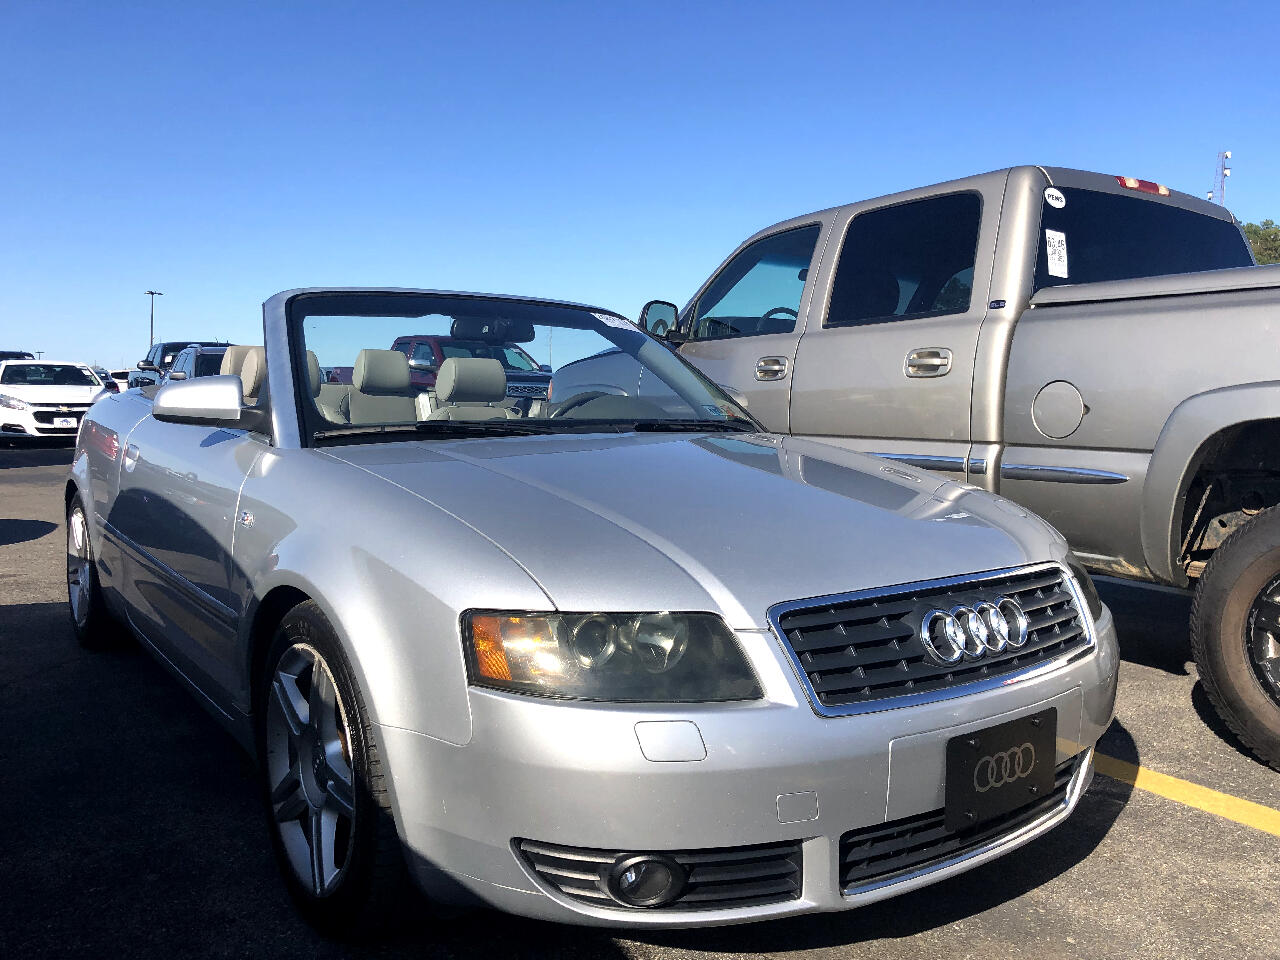 2006 Audi A4 Cabriolet 1.8T